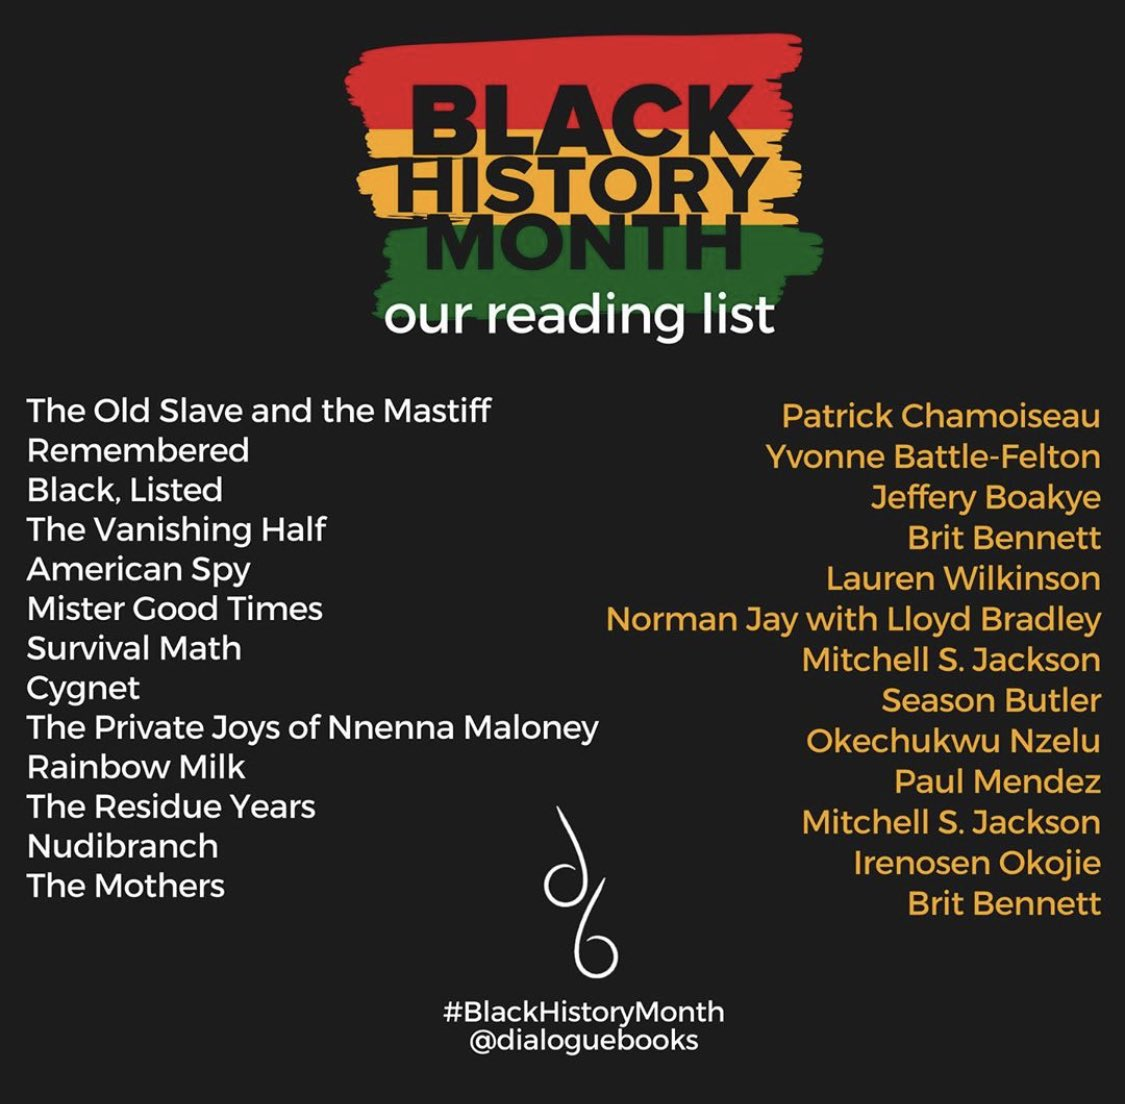 It's #BookshopDay today!! It's also #BlackHistoryMonth so I've made super it easy for you to support the local indie bookshop cause and increase your knowledge by publishing incredible narratives by brilliant writers. Check out the @dialoguebooks list below and get reading!! 🖤📖